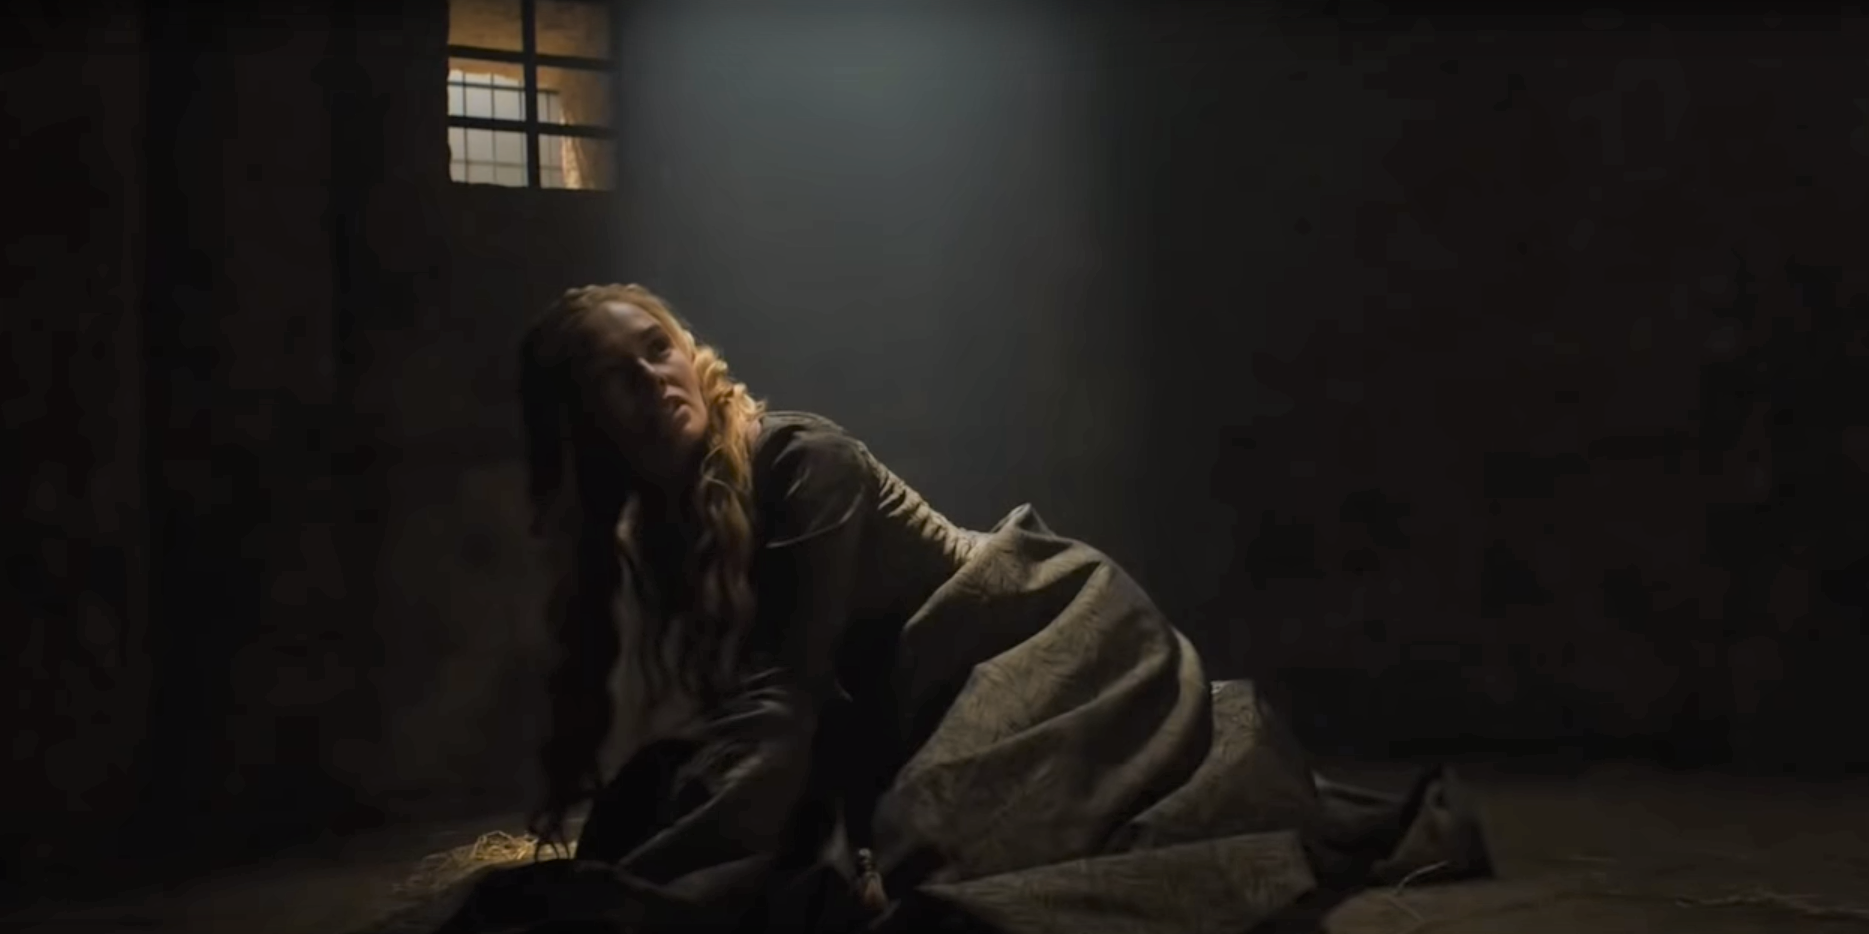 Cersei was feeling really good about herself right up until the moment the High Sparrow had Septa Mordane throw her in a cell